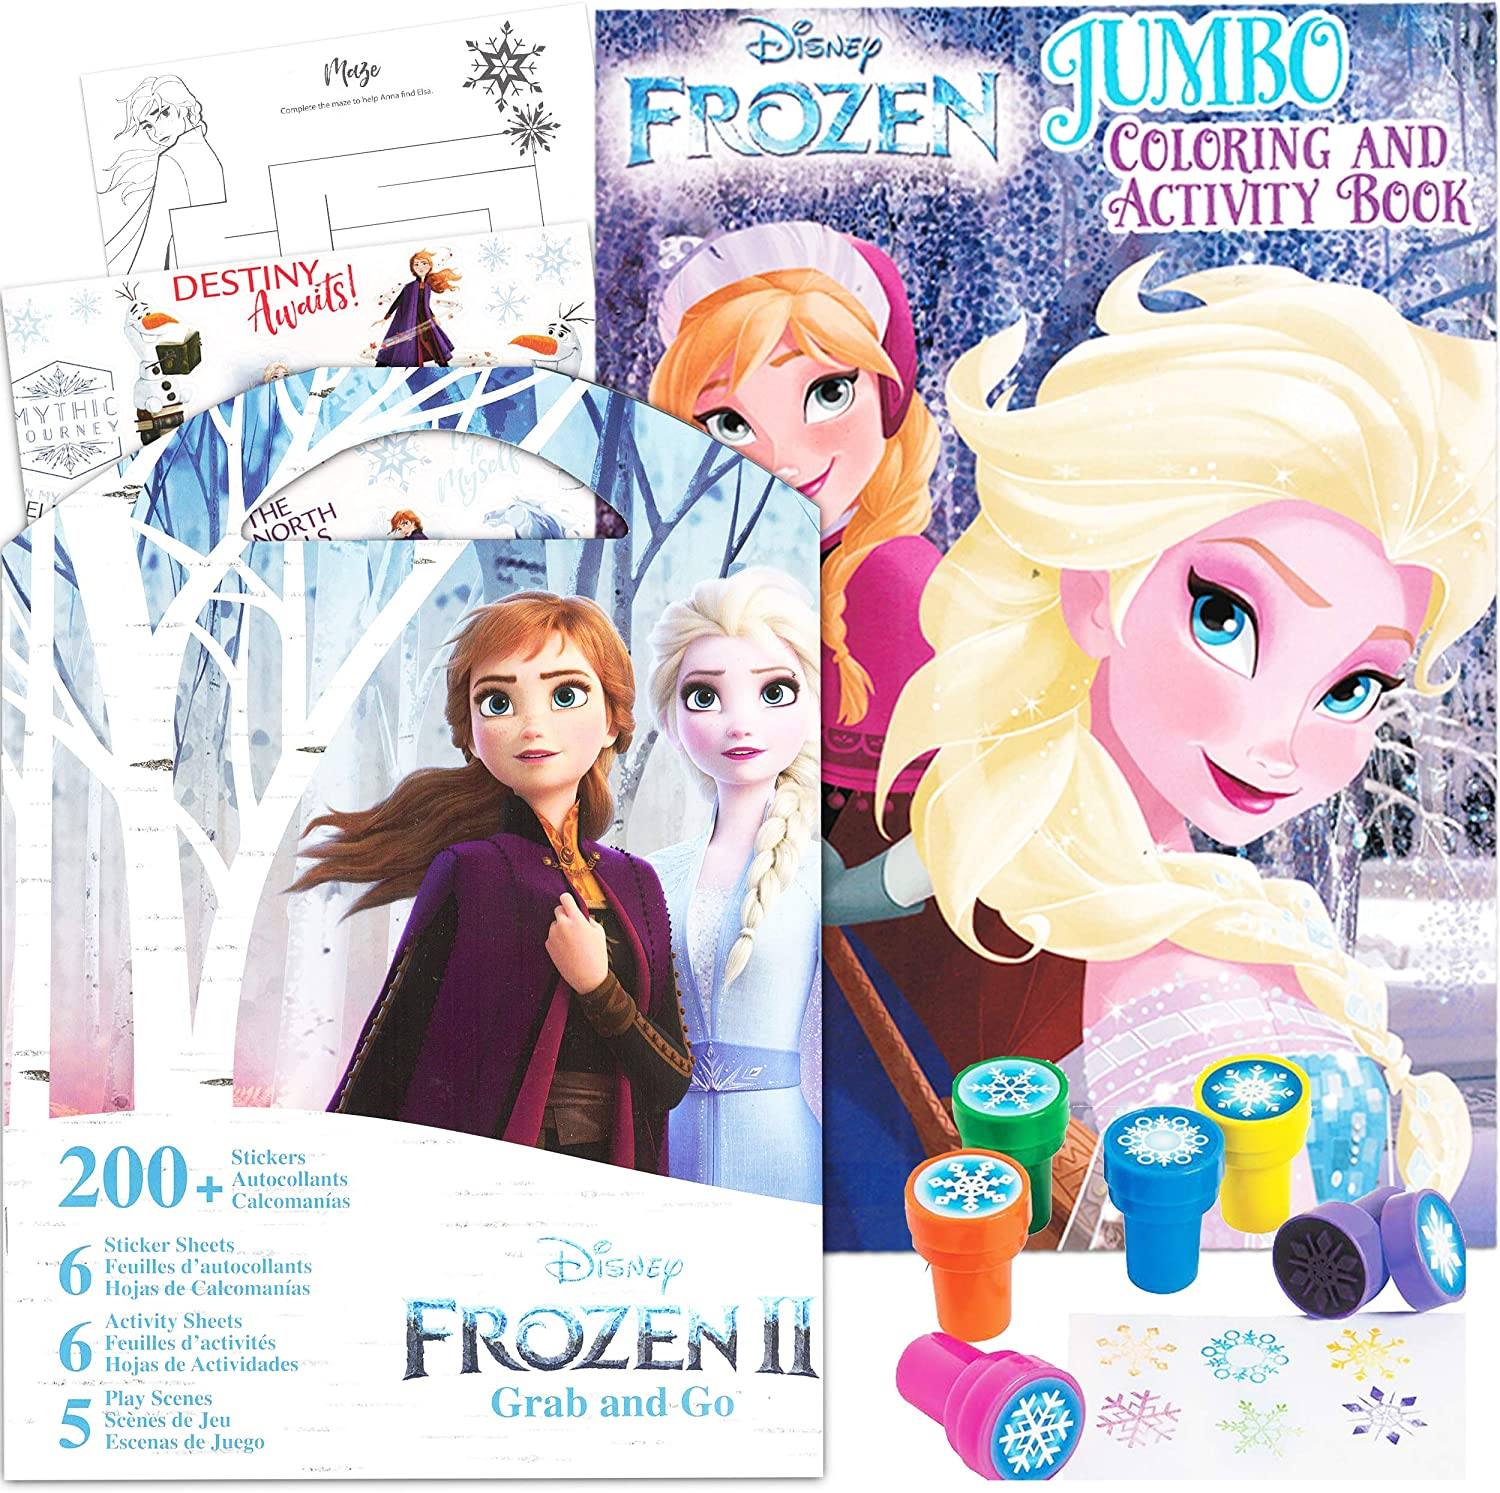 Disney Frozen Coloring Book Activity Set for Girls Kids Toddlers -- Bundle Includes Frozen Stickers and Snowflake Stampers (Disney Frozen Party Supplies)